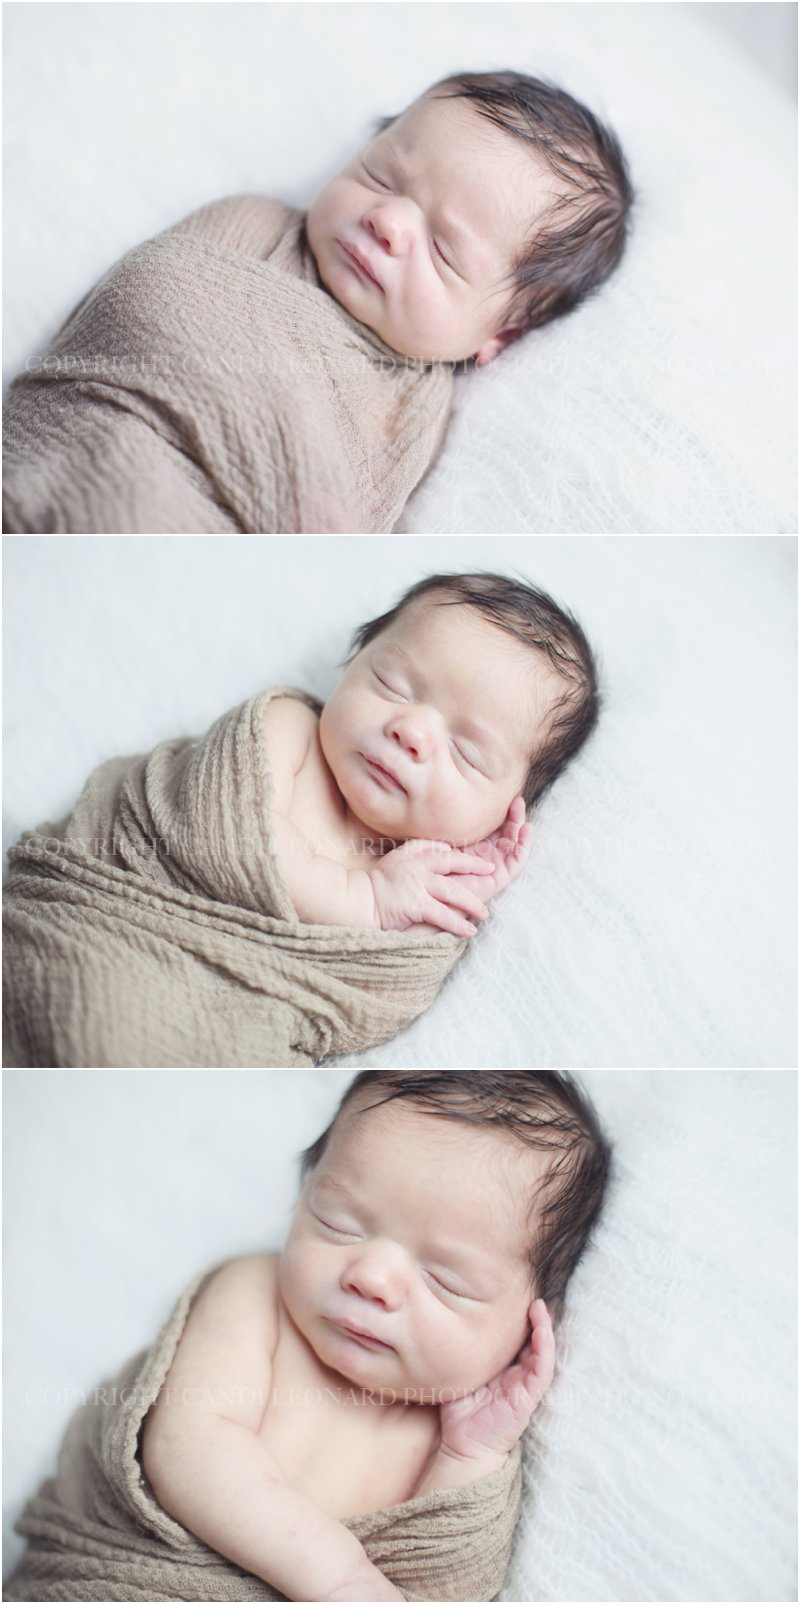 Pittsboro_NC_newborn_photographer_0869